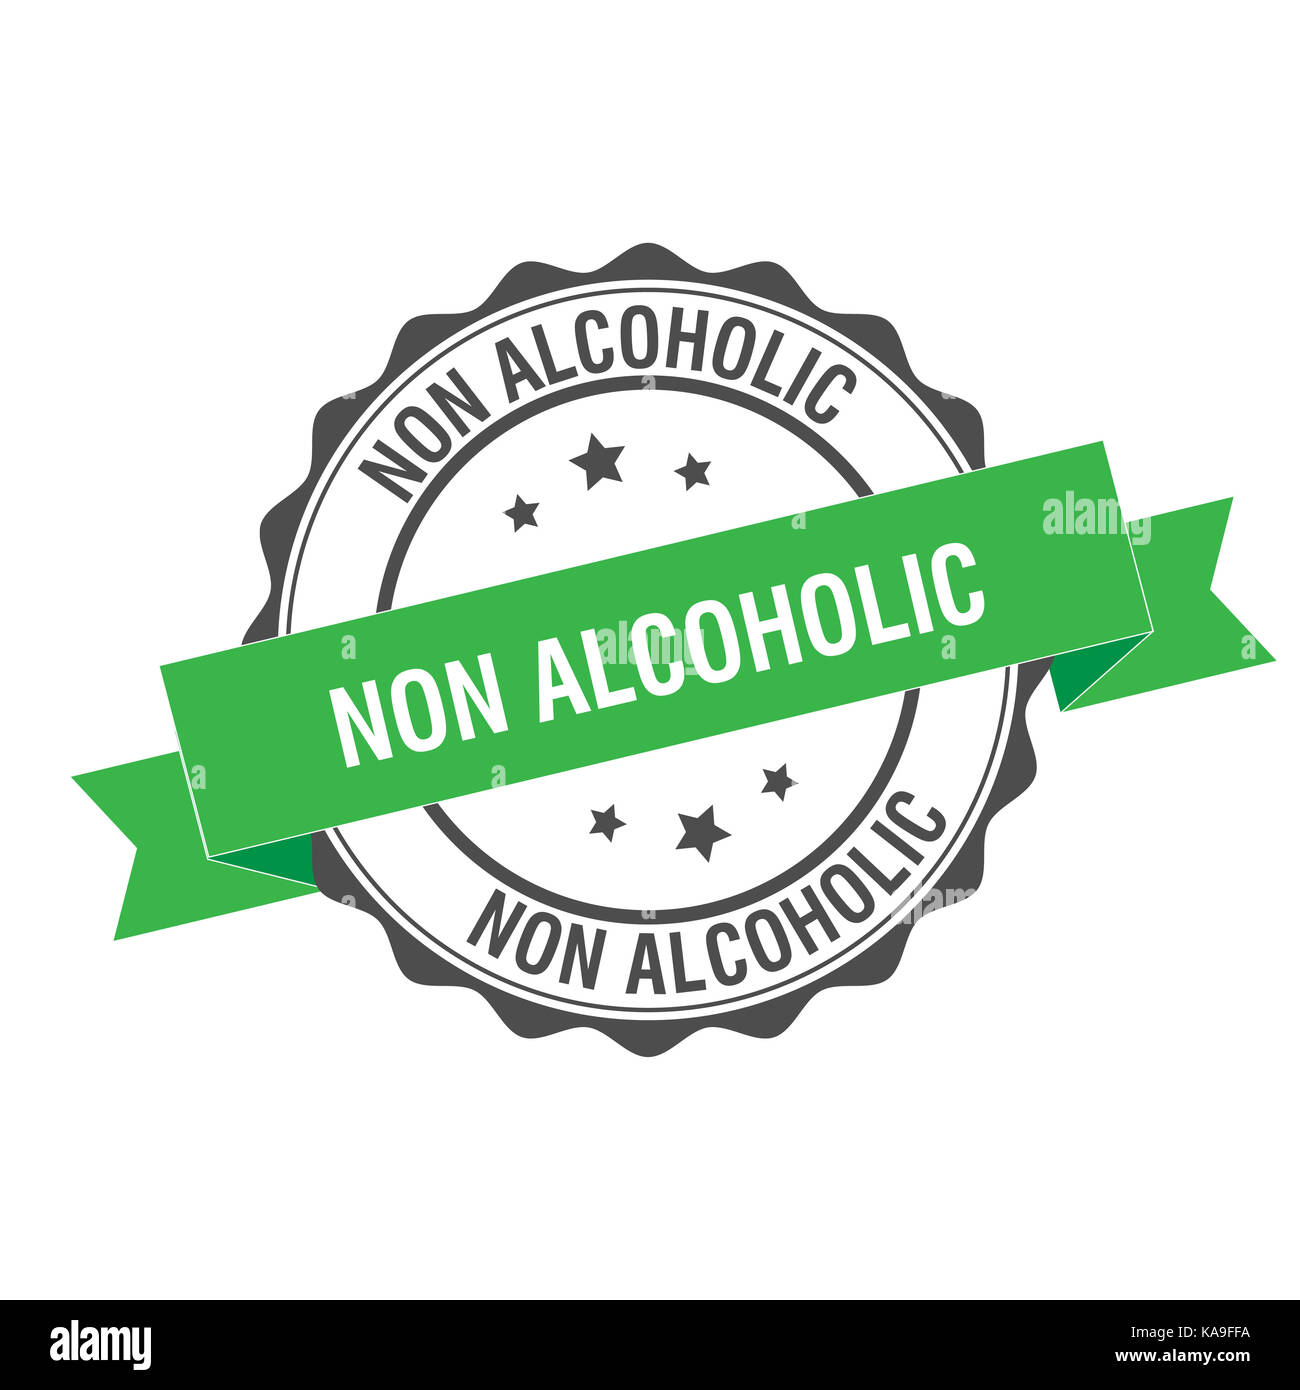 Non alcoholic stamp illustration - Stock Image